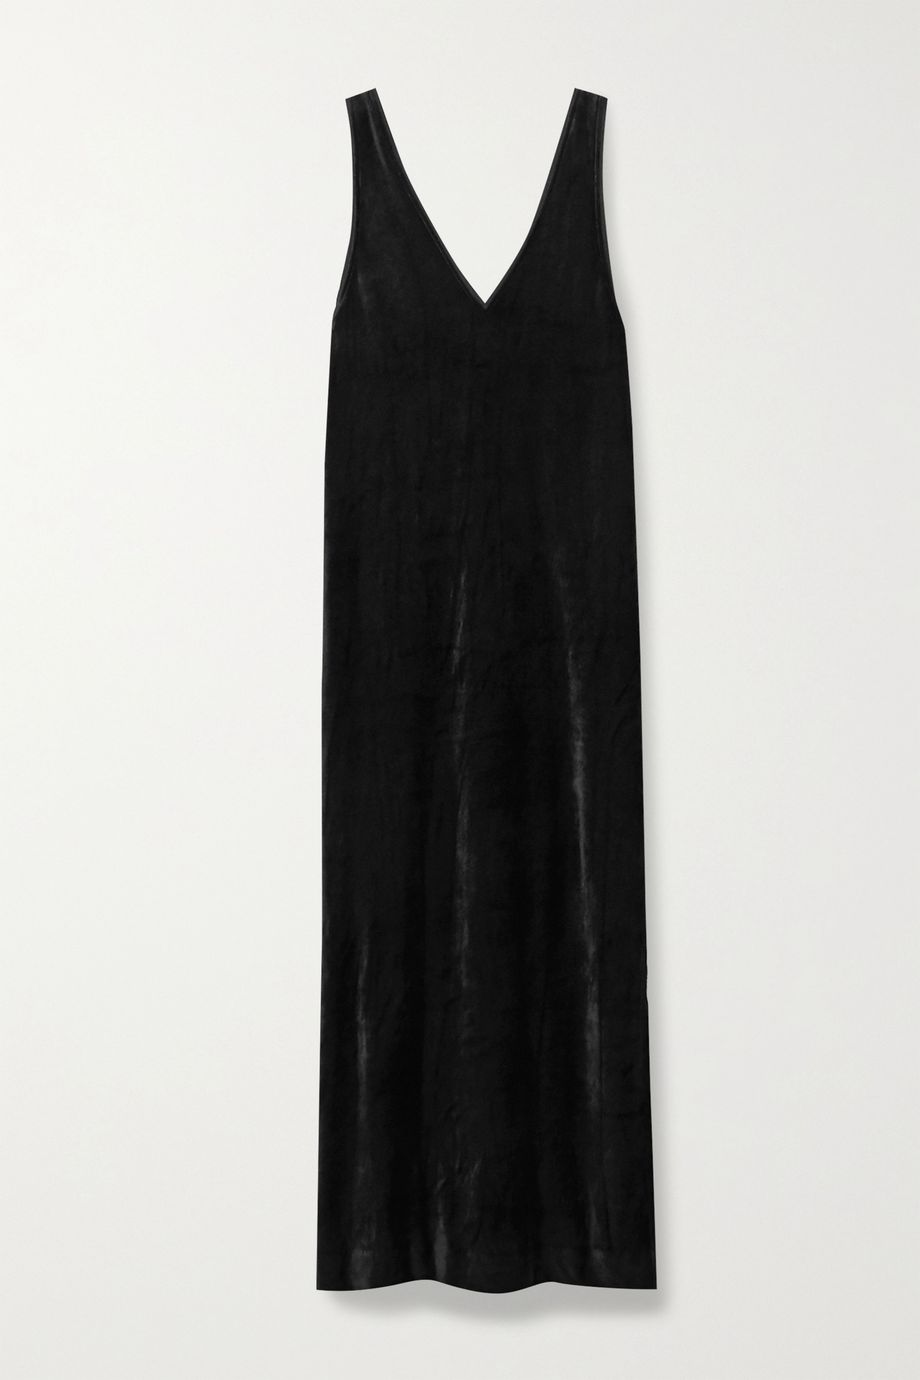 Ninety Percent + NET SUSTAIN Micro Modal-blend velour midi dress